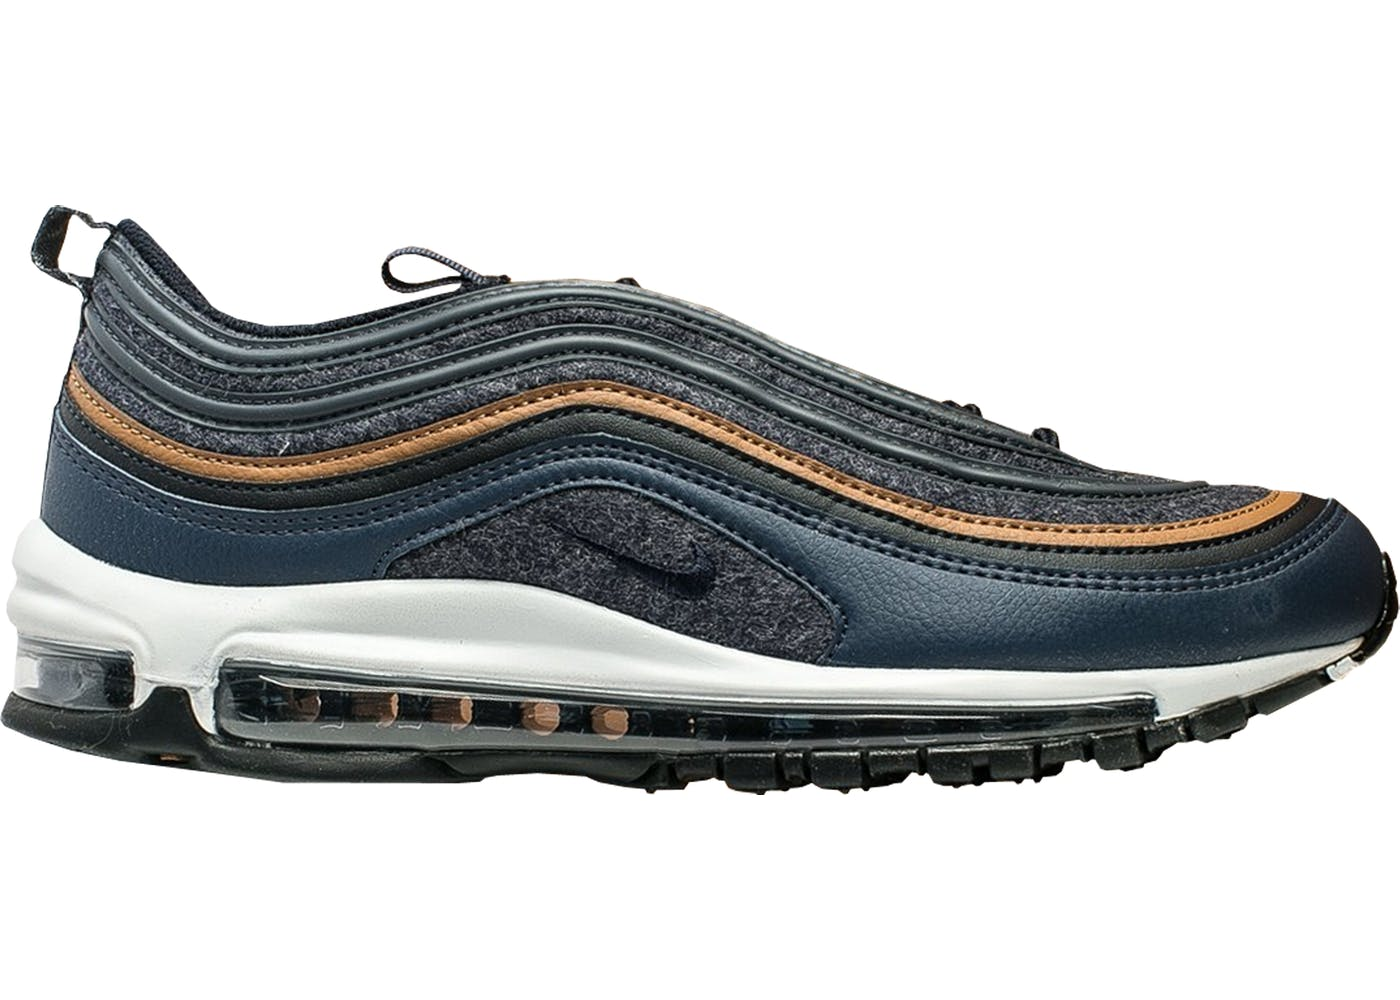 Air Max 97 Wool Thunder Blue